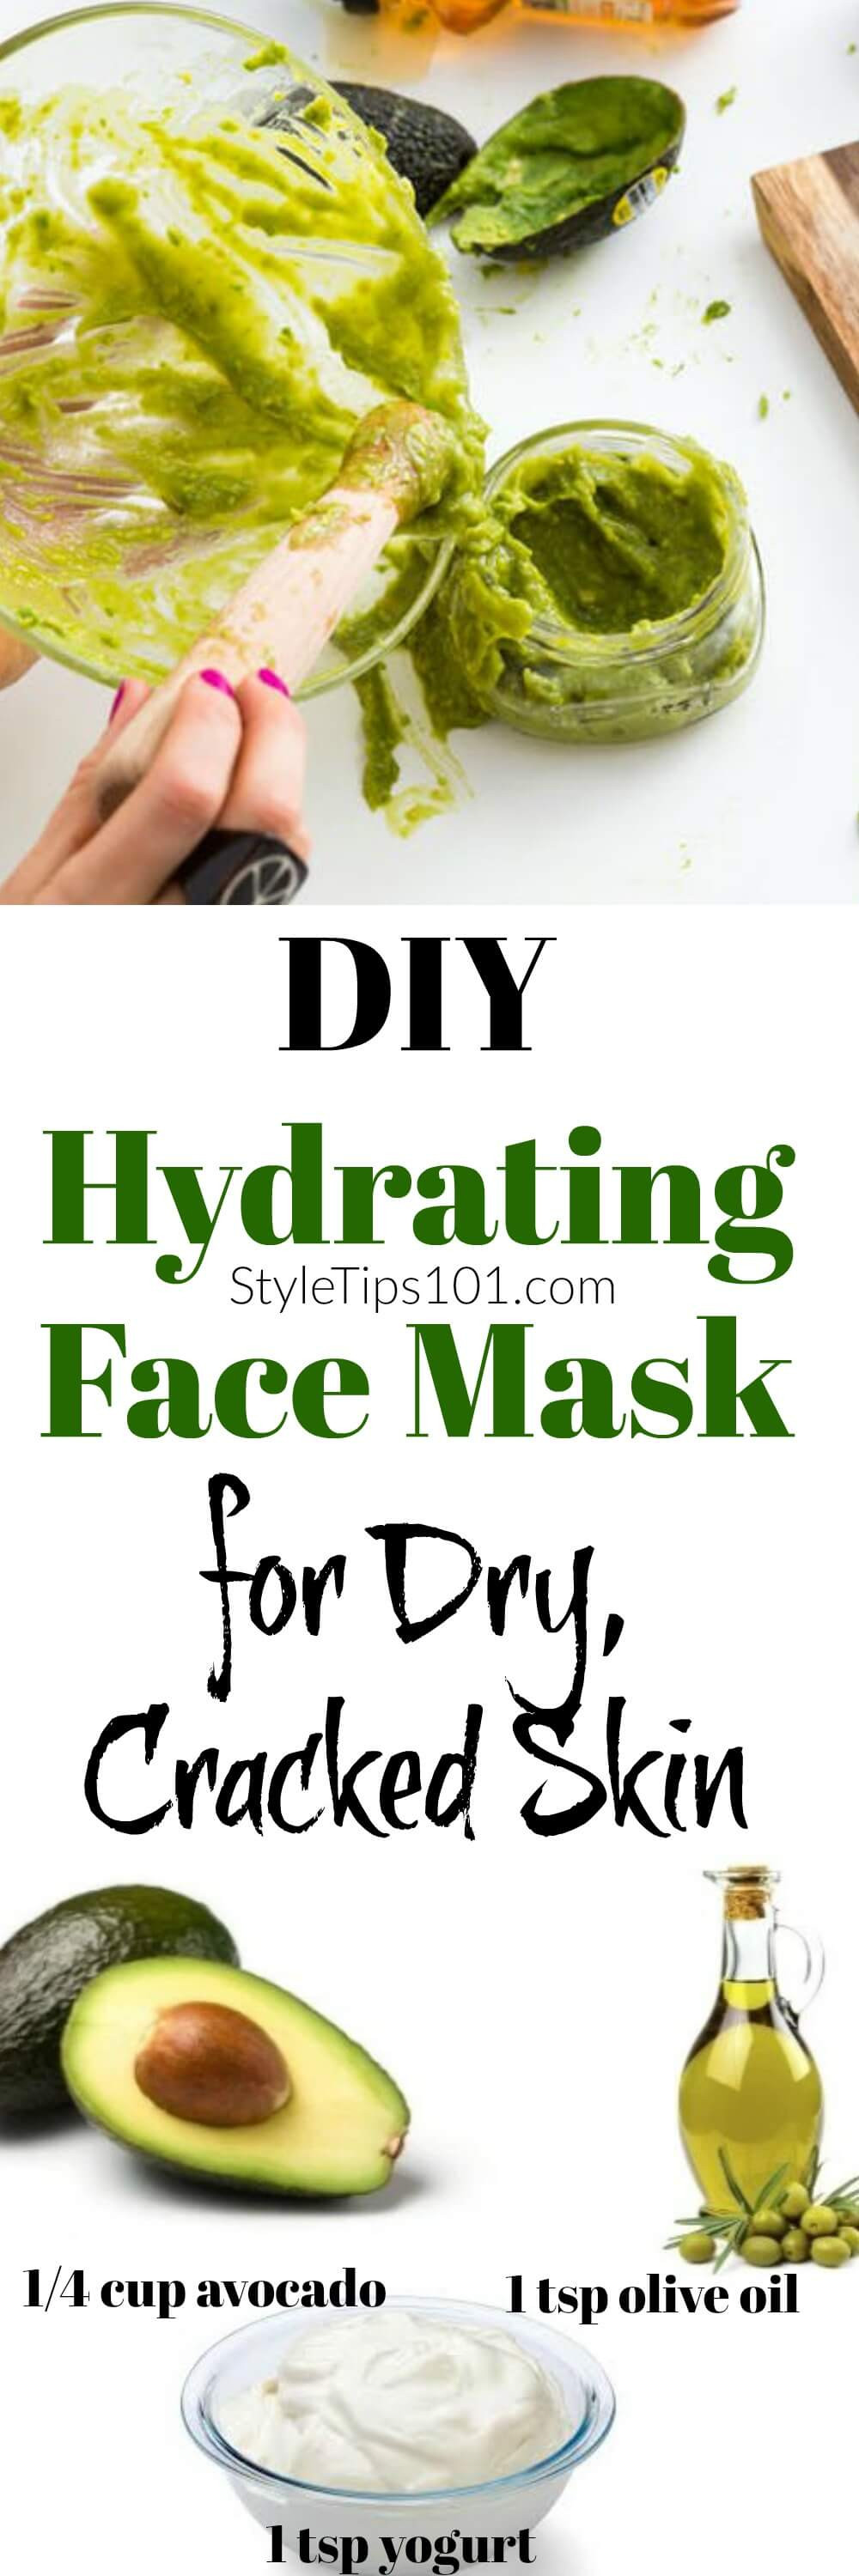 Moisturizing Face Mask DIY  DIY Hydrating Face Mask With Avocado & Yogurt